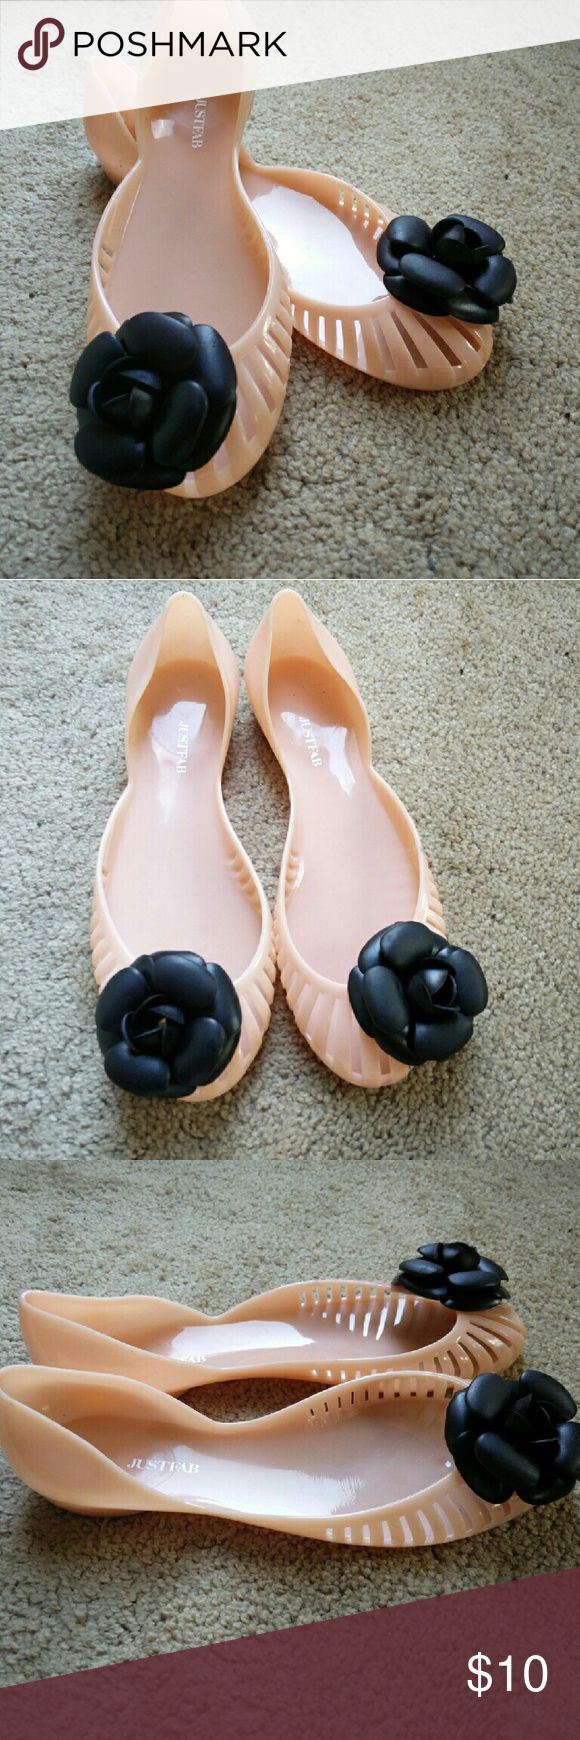 Women's jelly sandals size 10 - Women S Jelly Sandals Cute Pink Jelly Sandals With A Black Flower On The Toe Size